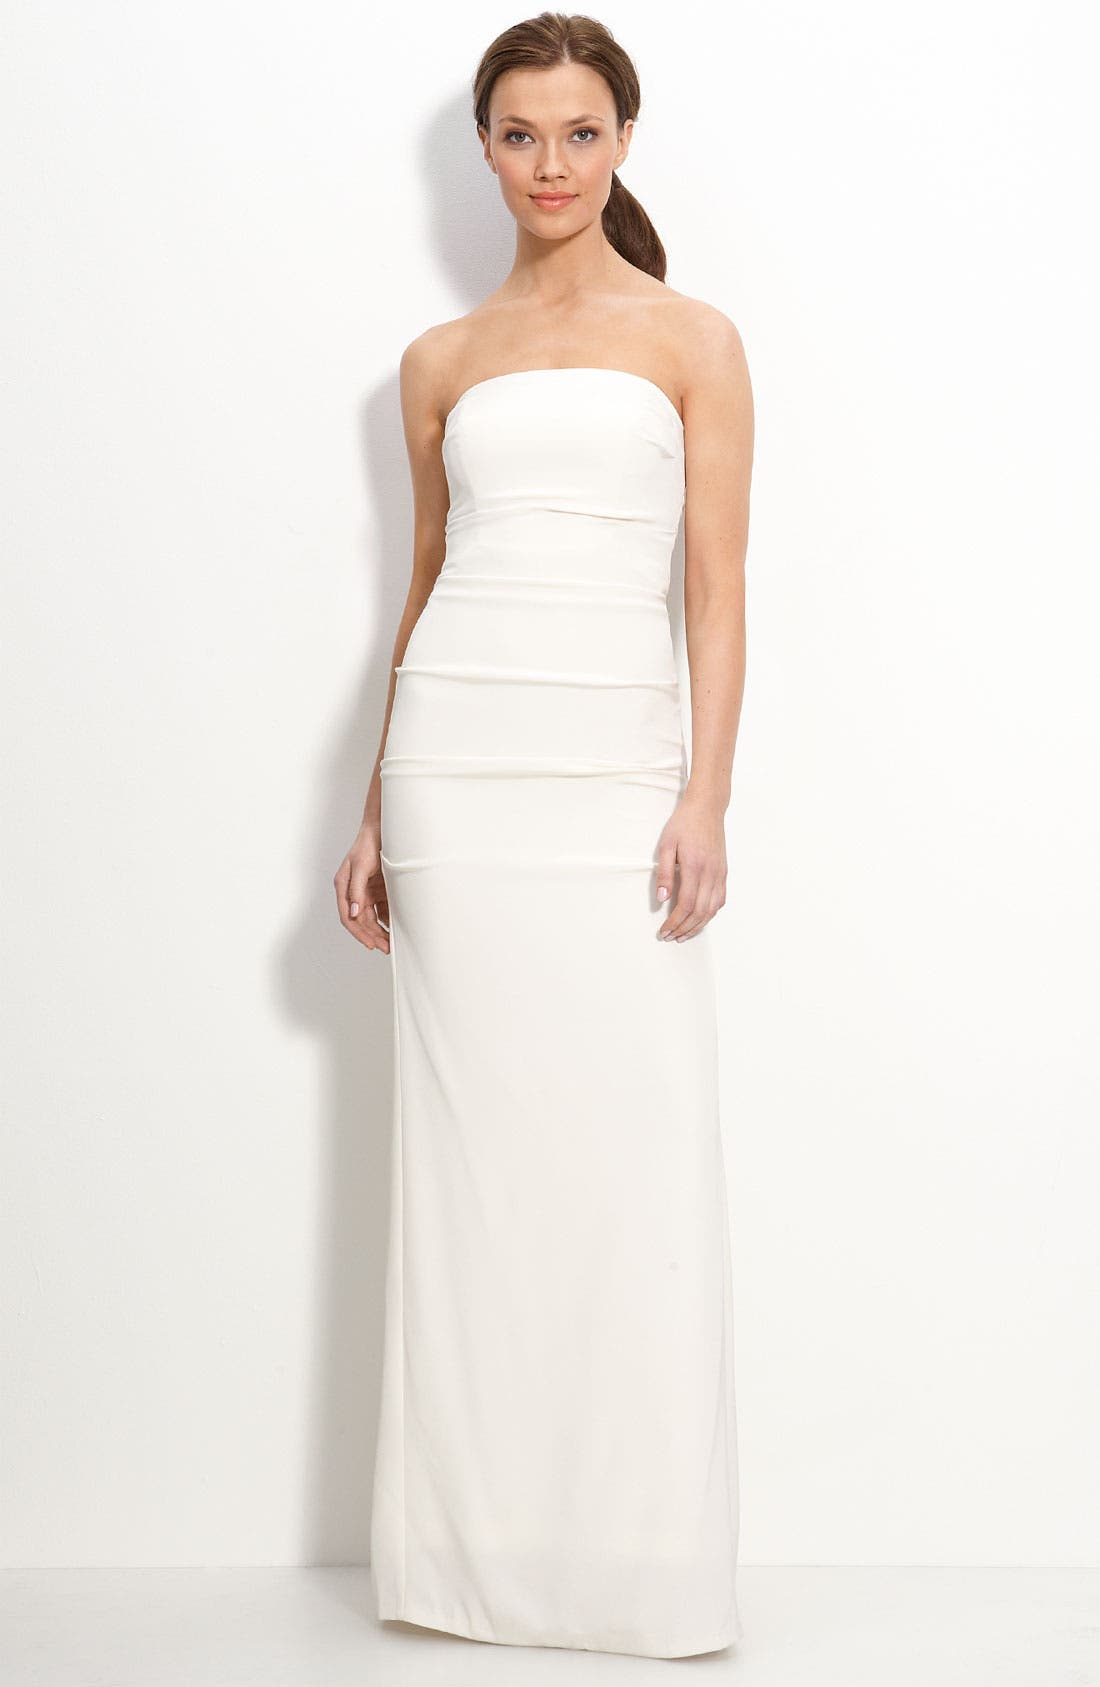 Alternate Image 1 Selected - Nicole Miller Pintucked Crêpe de Chine Strapless Gown